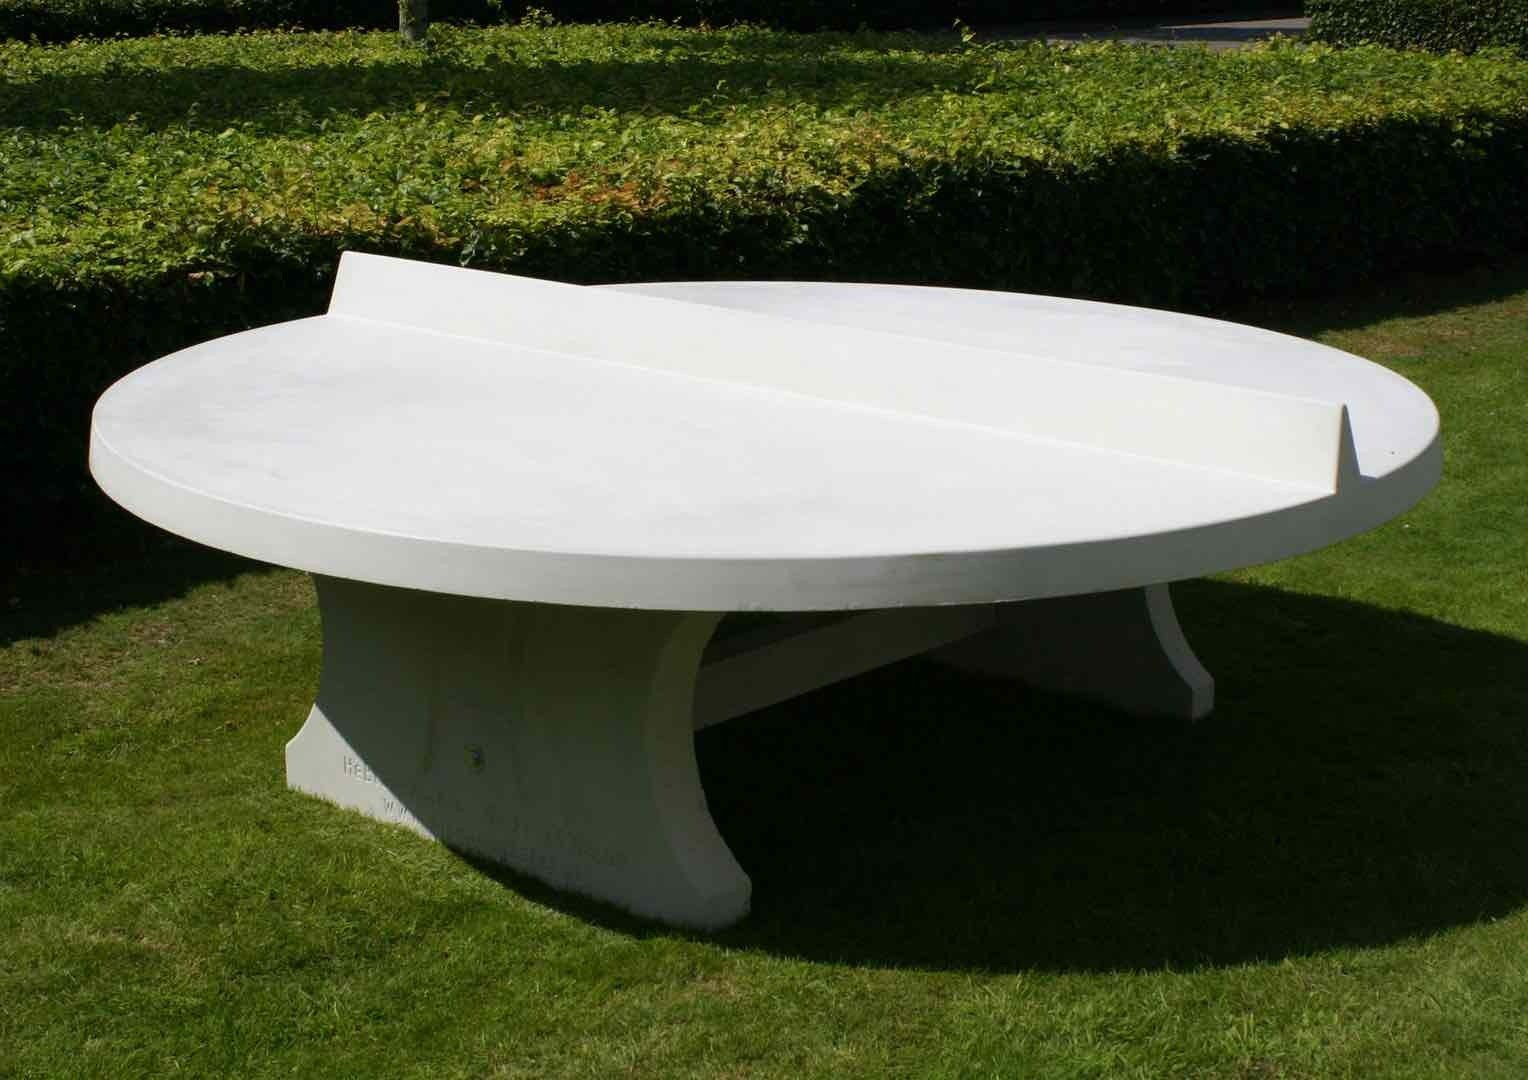 - Concrete Ping-pong Table Round Outdoor - Kickerkult Onlineshop